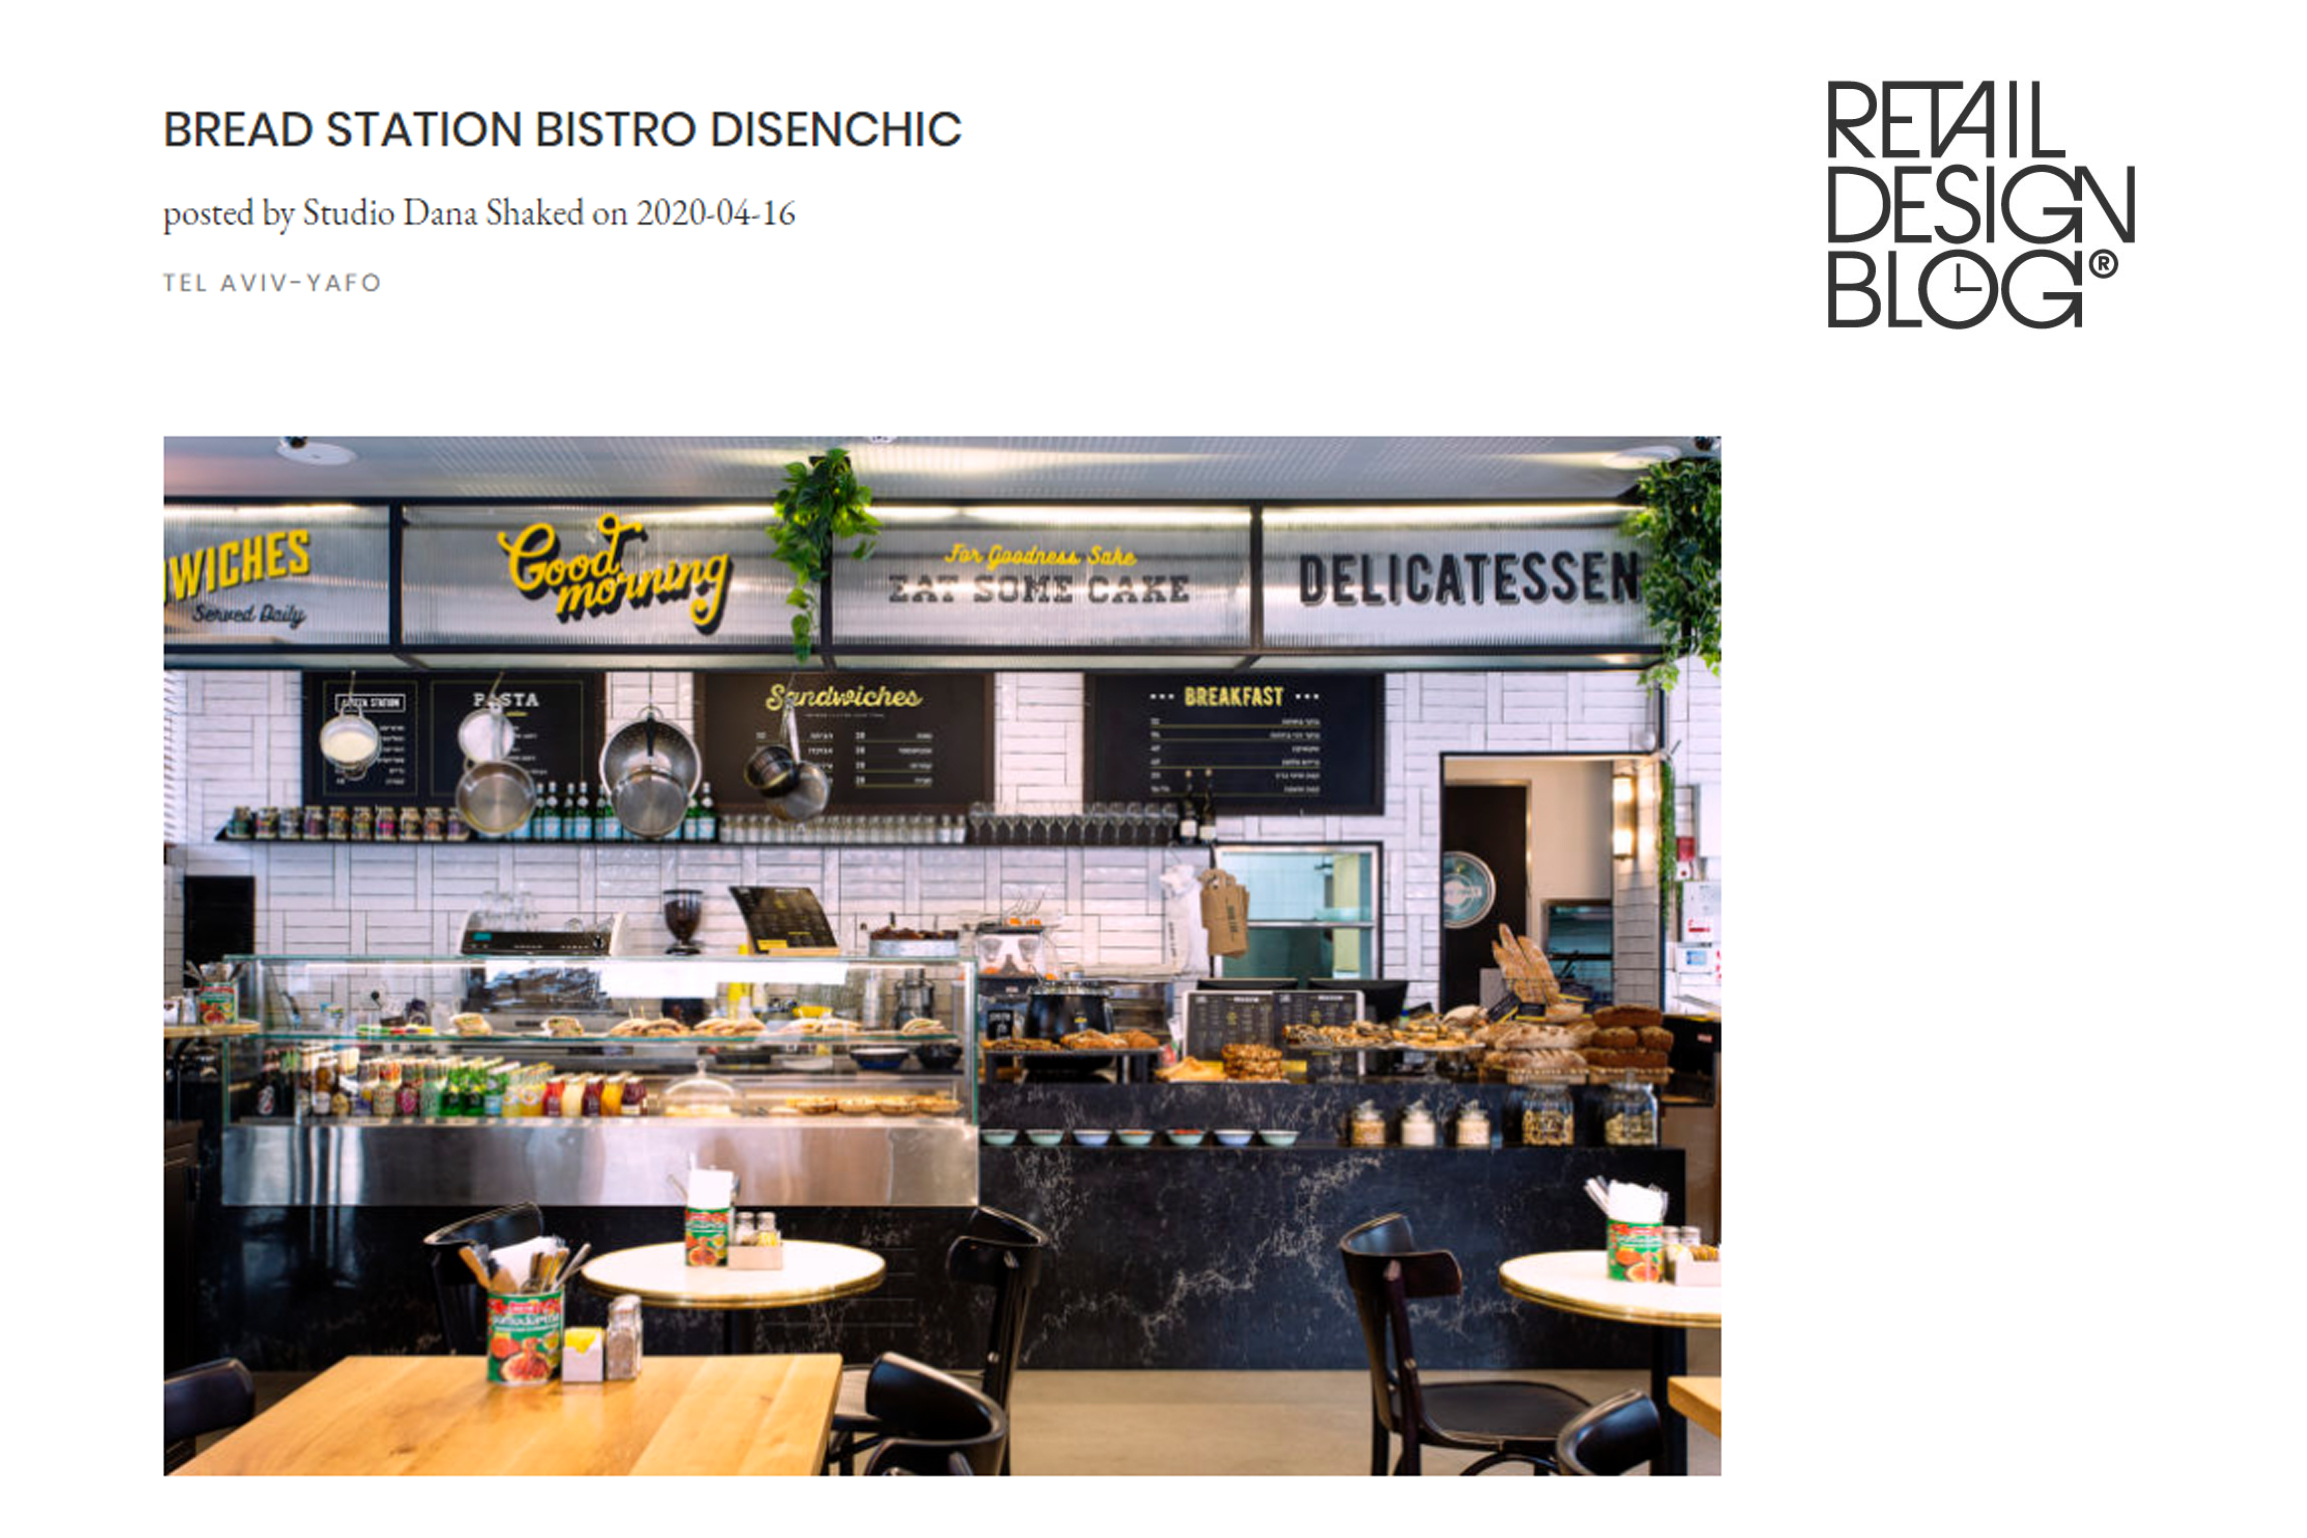 Bread Staion Disenchic – Retail Design Blog